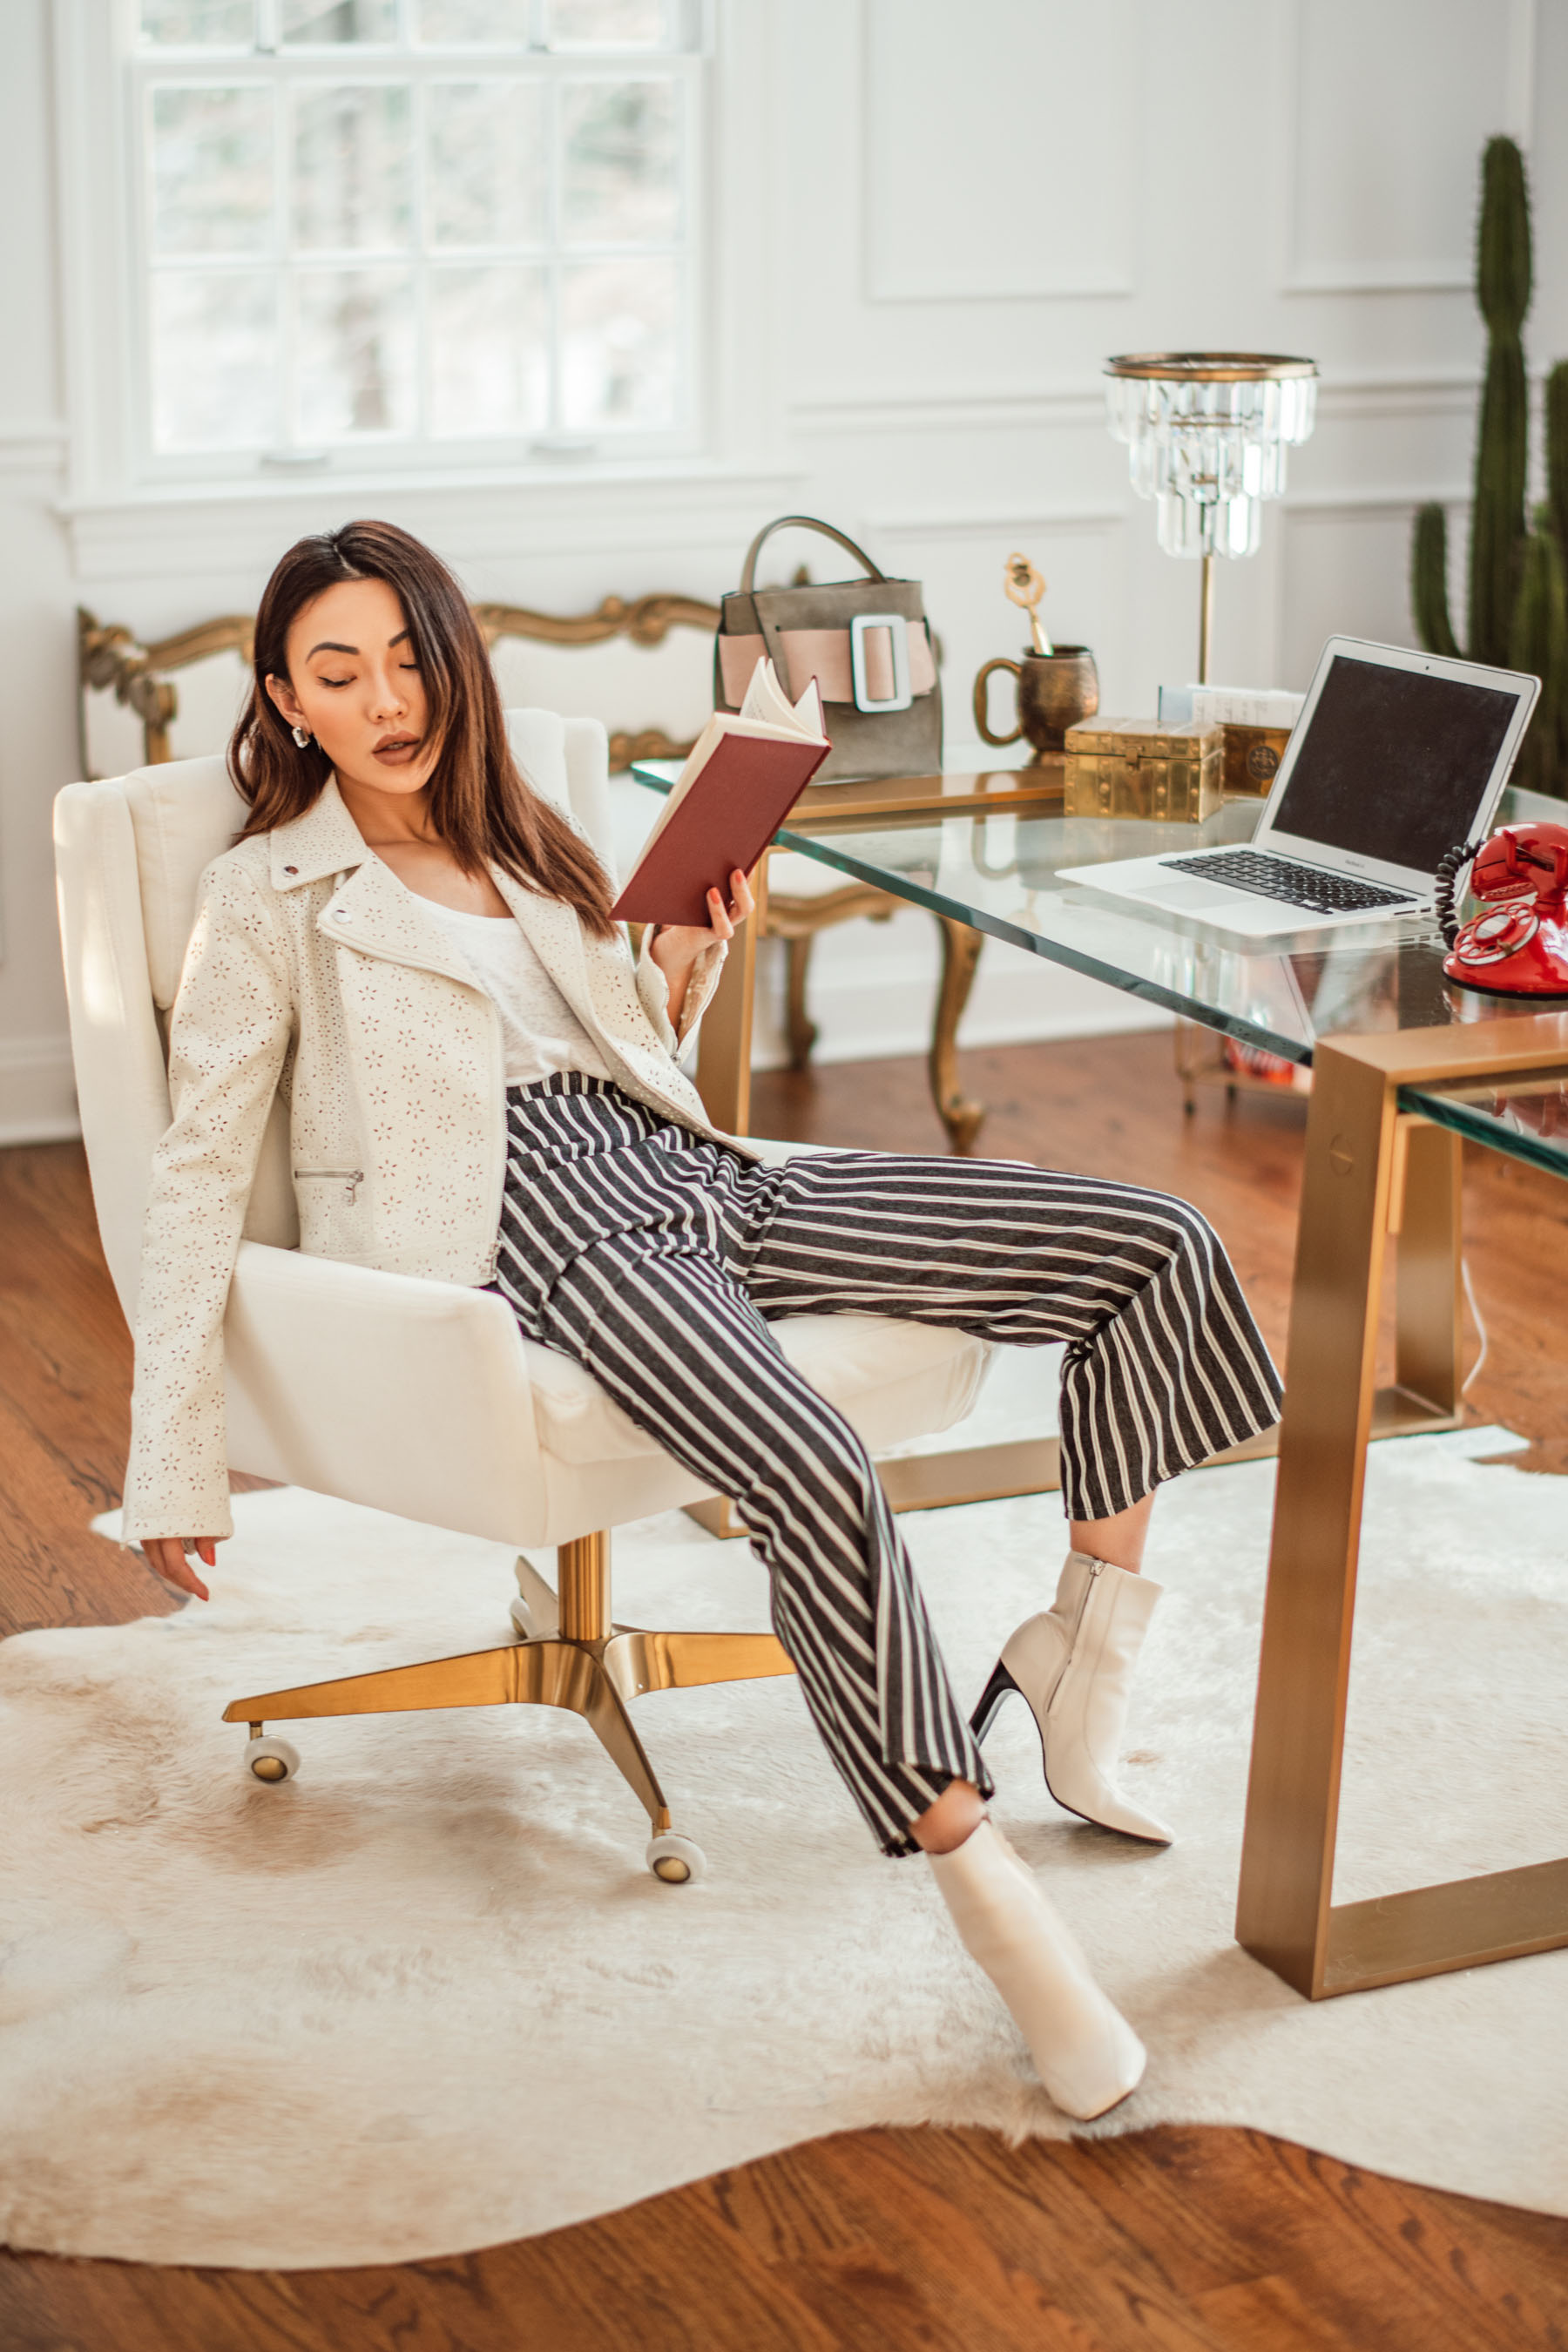 Work Wear Trends for an Ultra Chic Look - Express leather jacket, Express striped trousers, white ankle boots, professional spring outfit, professional office look // Notjessfashion.com